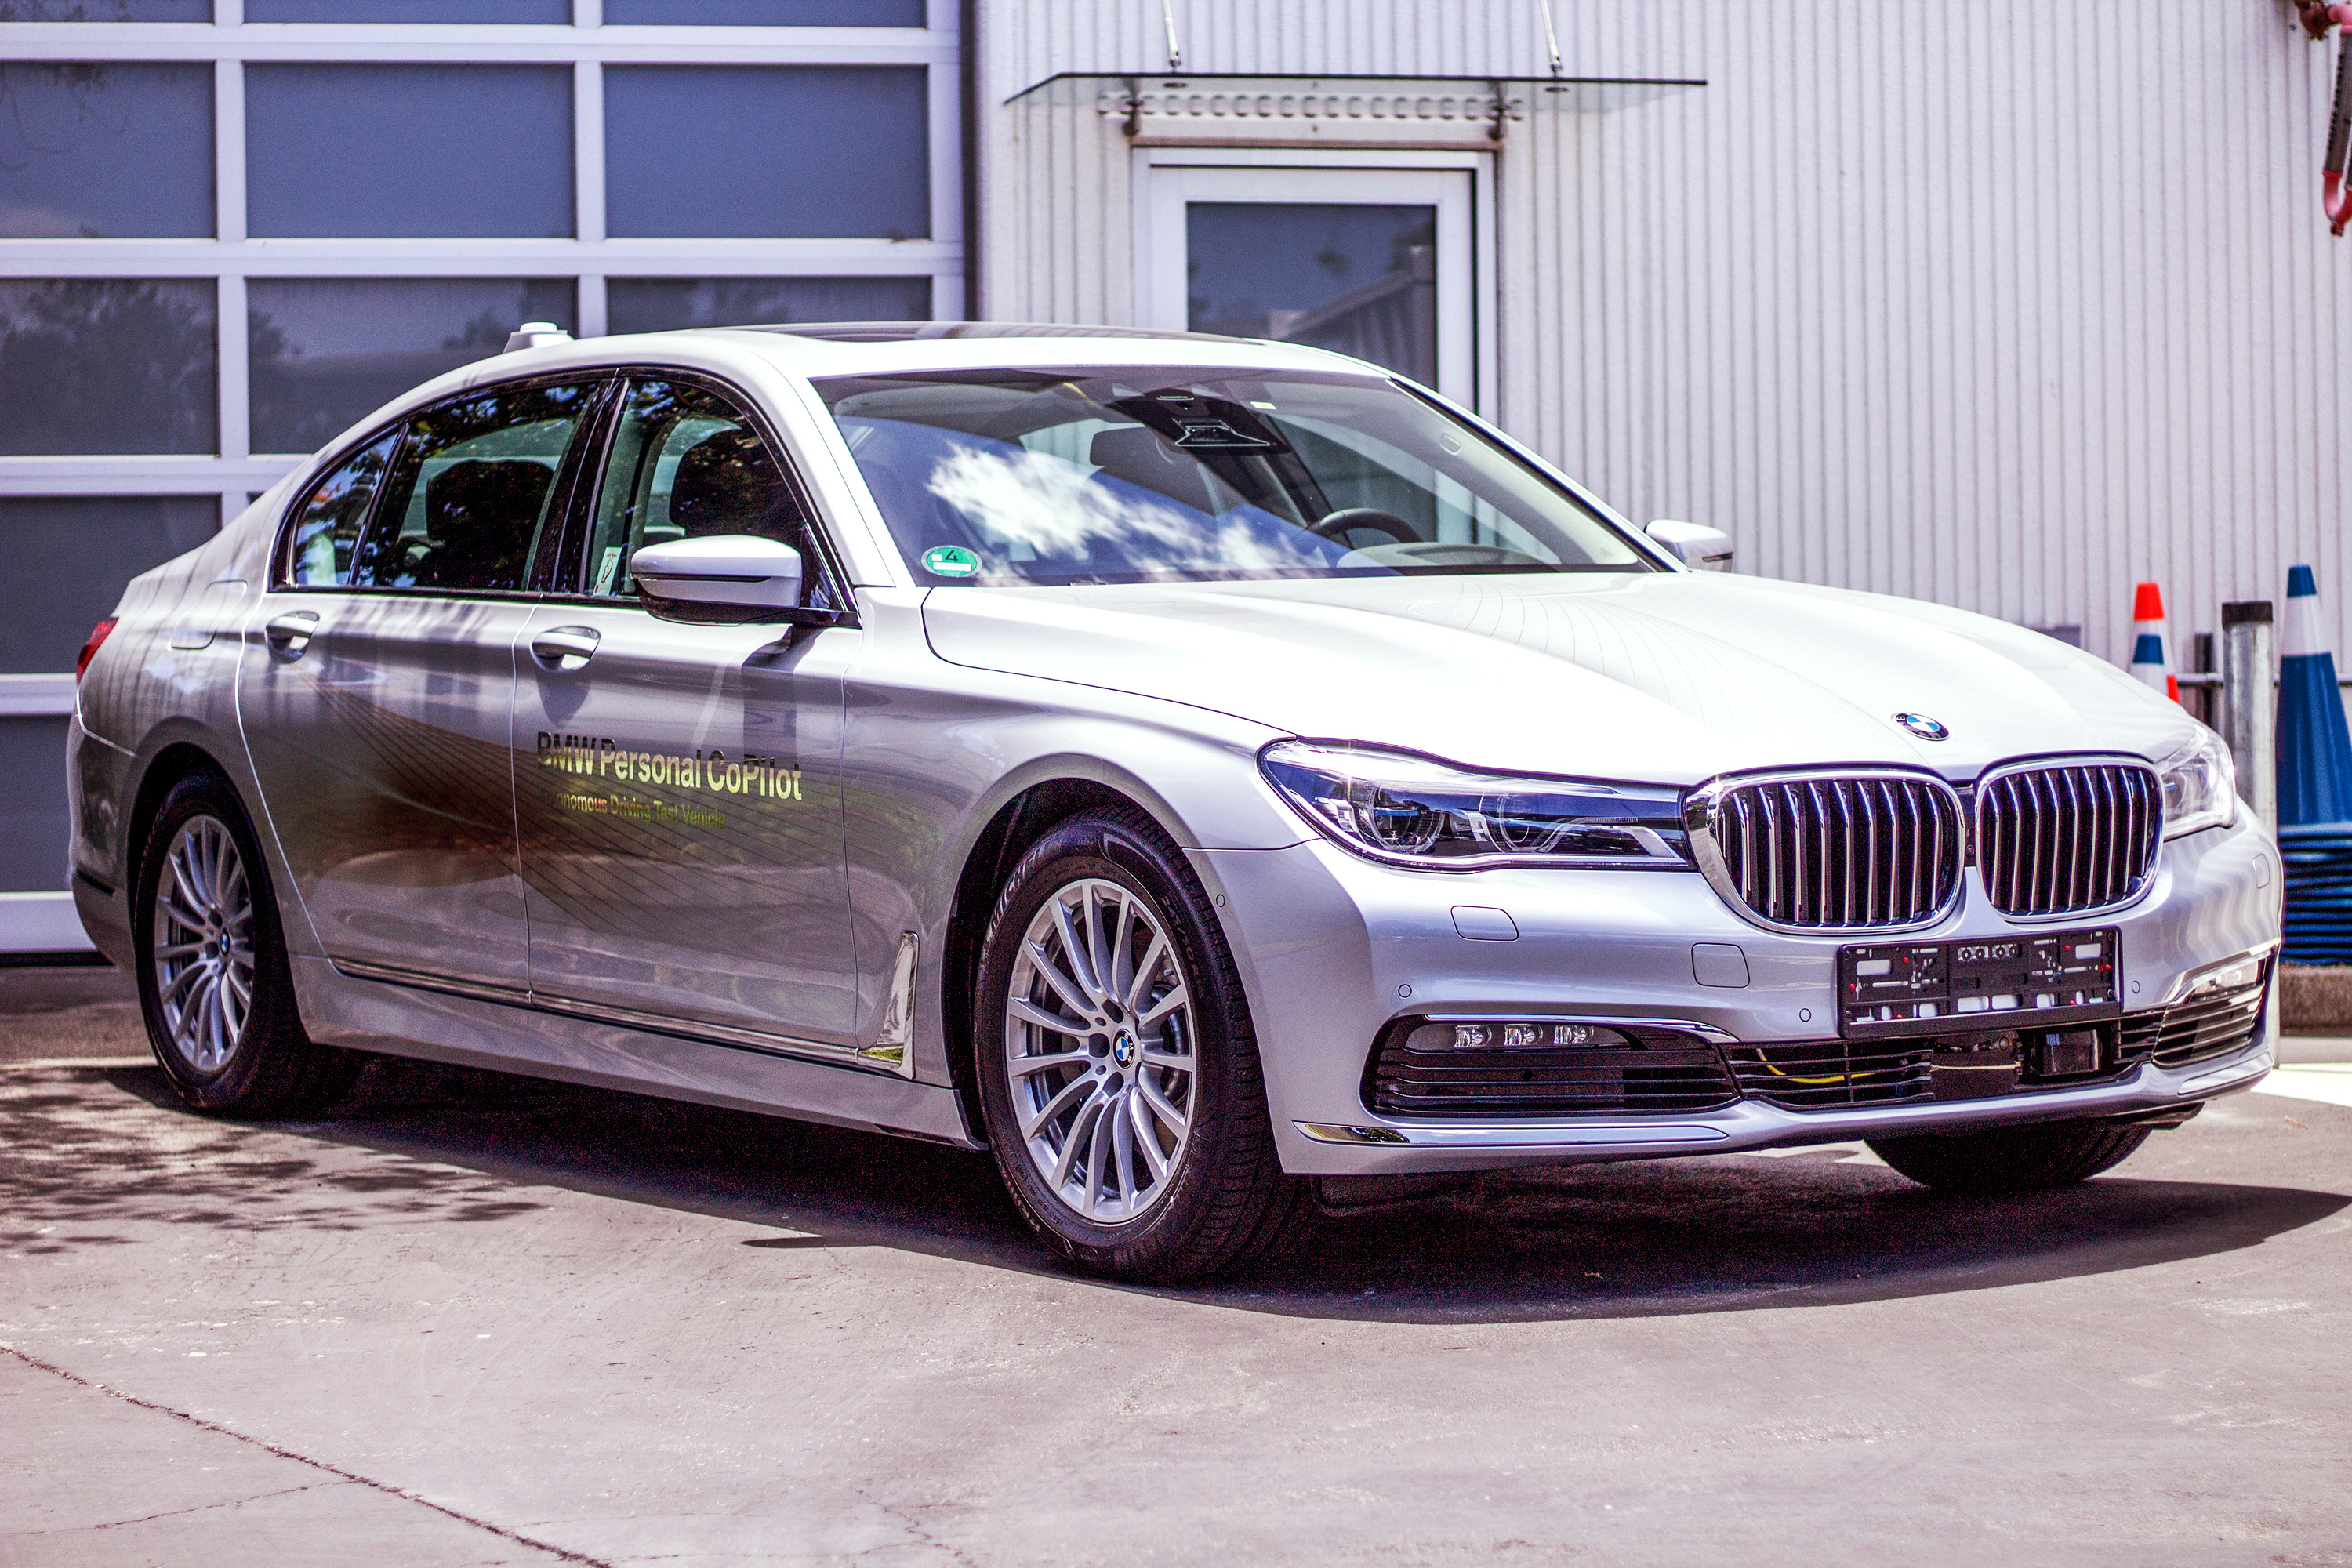 Developed at the BMW Tech Office in Mountain View, this 5 series sedan features the company's Level 2 autonomous-vehicle features.Photo by Ben Hacker.